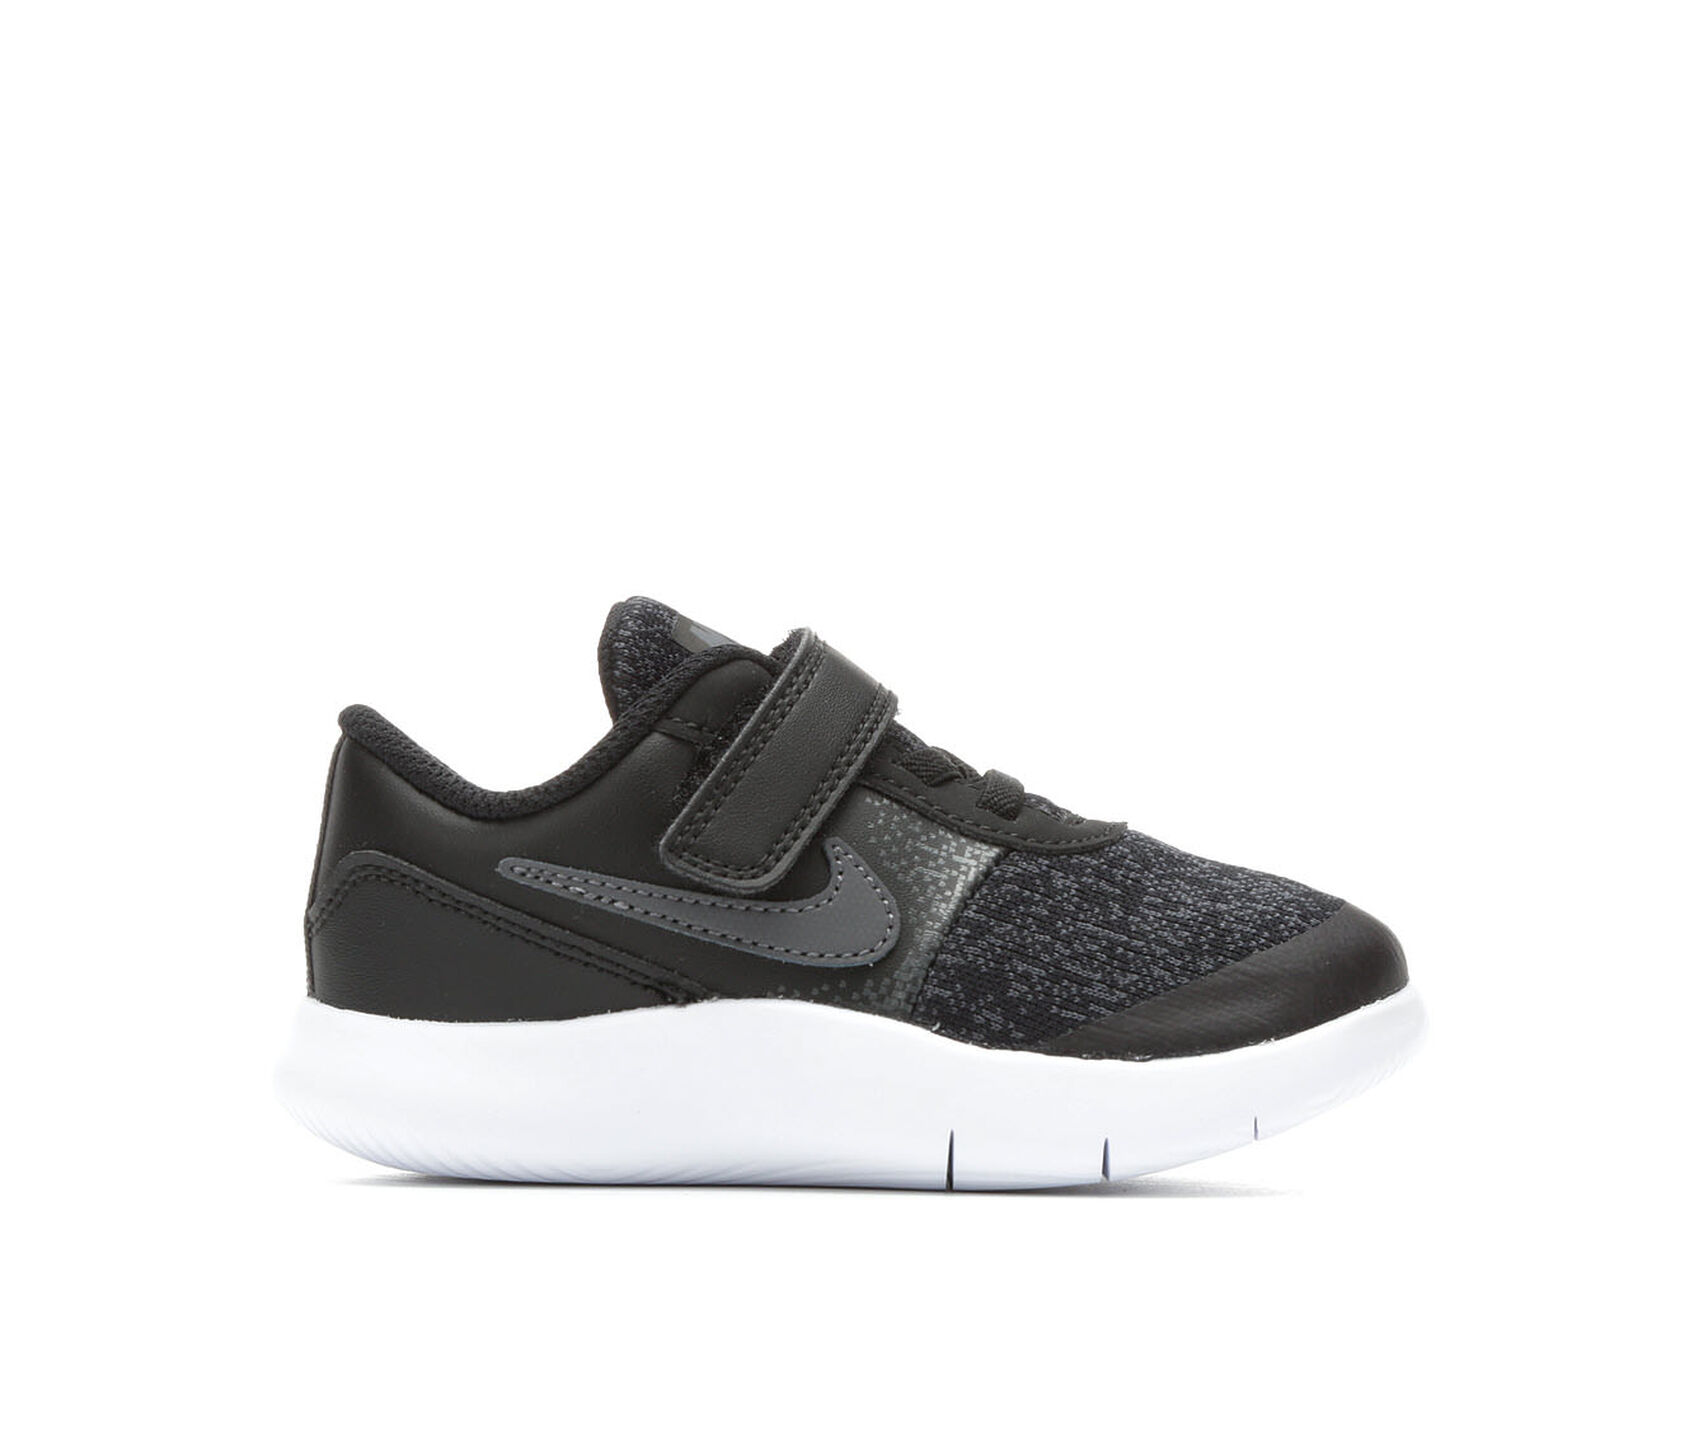 2e79766463f3a1 Boys  Nike Infant   Toddler Flex Contact Velcro Running Shoes